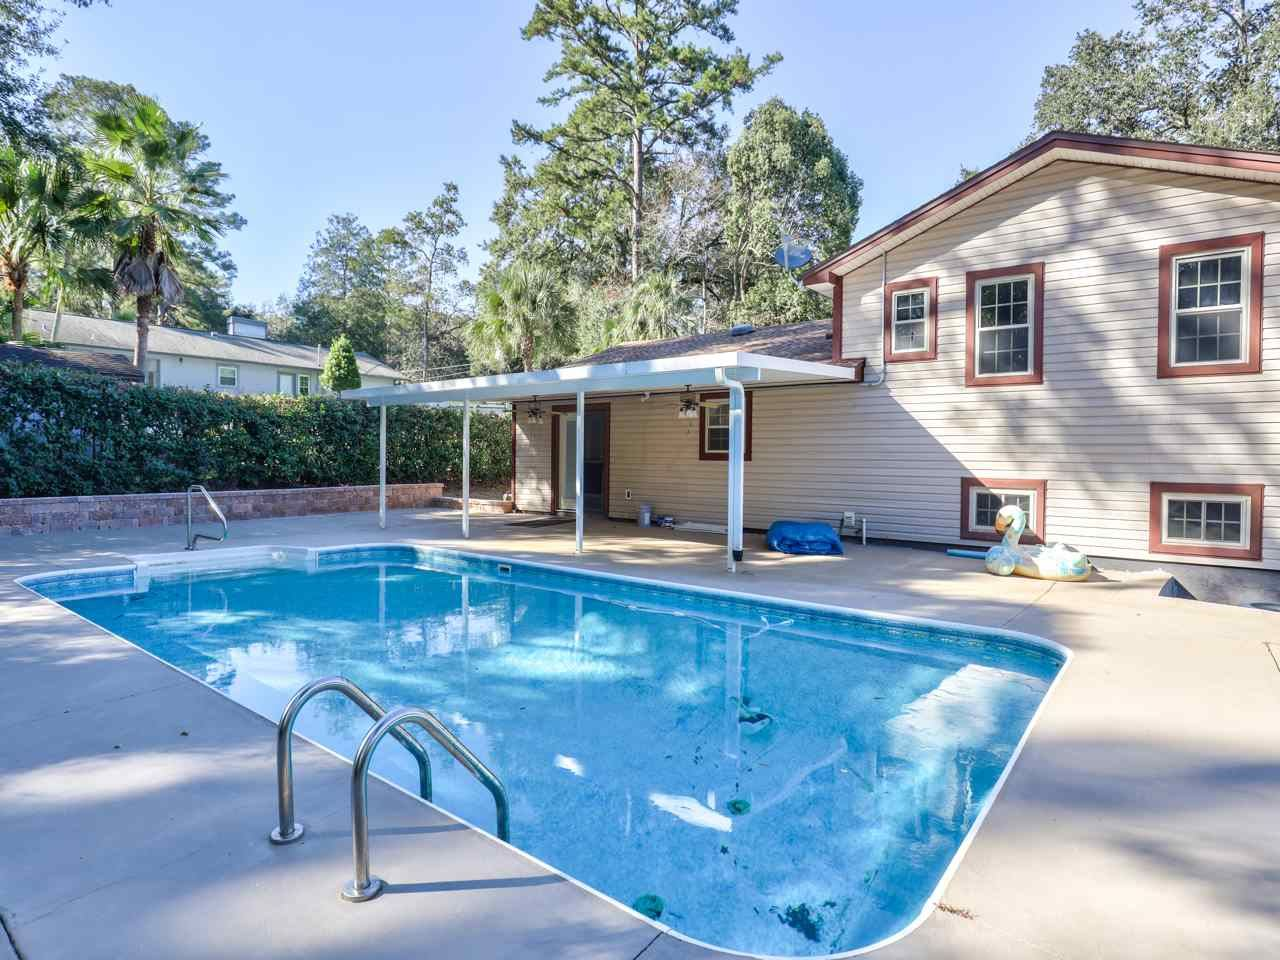 1717 Valley Road, Tallahassee, FL 32301 - MLS#: 331320